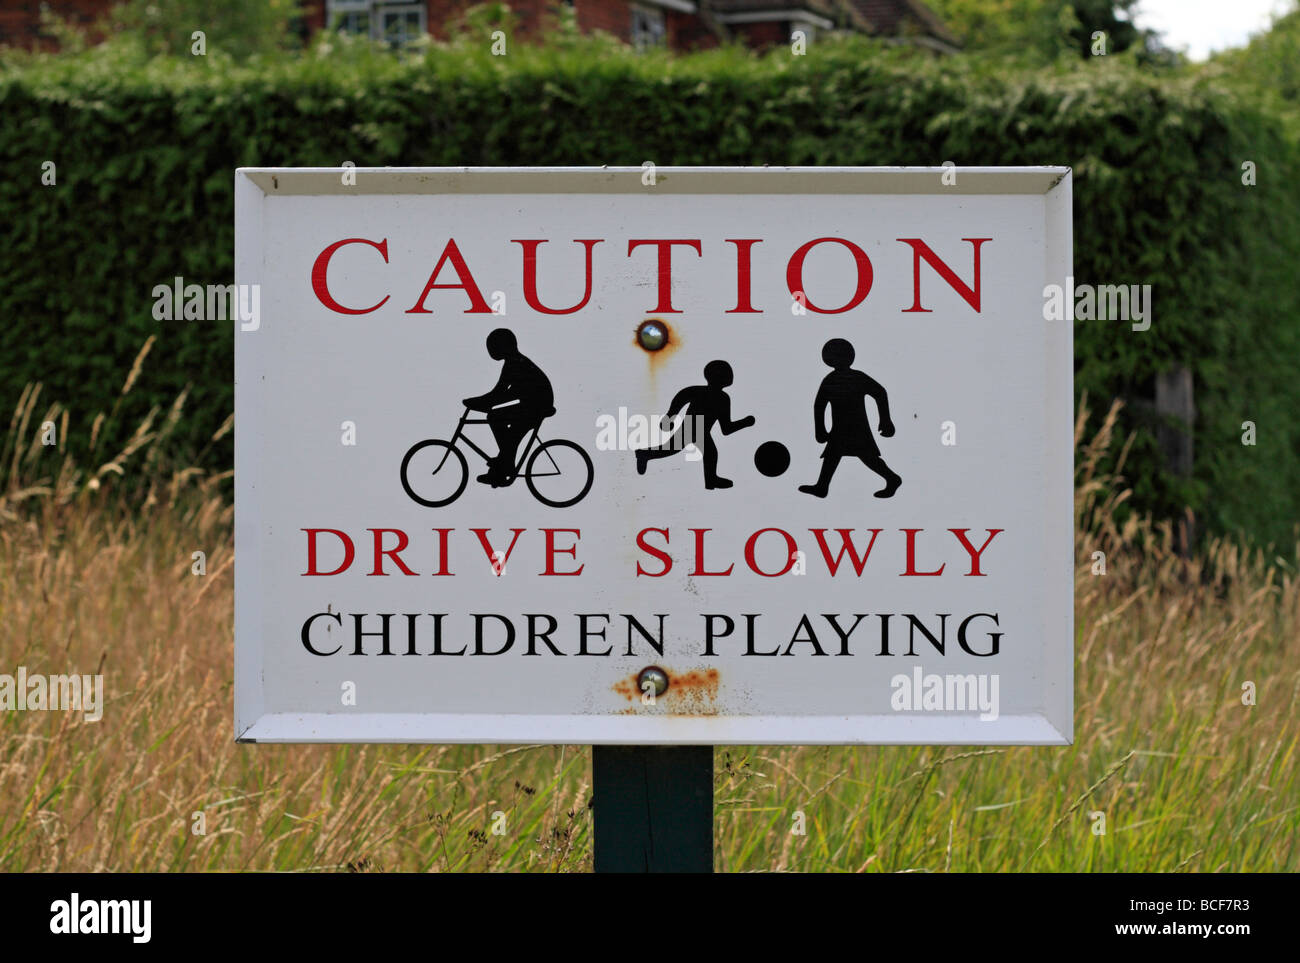 caution sign uk stockfotos caution sign uk bilder alamy. Black Bedroom Furniture Sets. Home Design Ideas